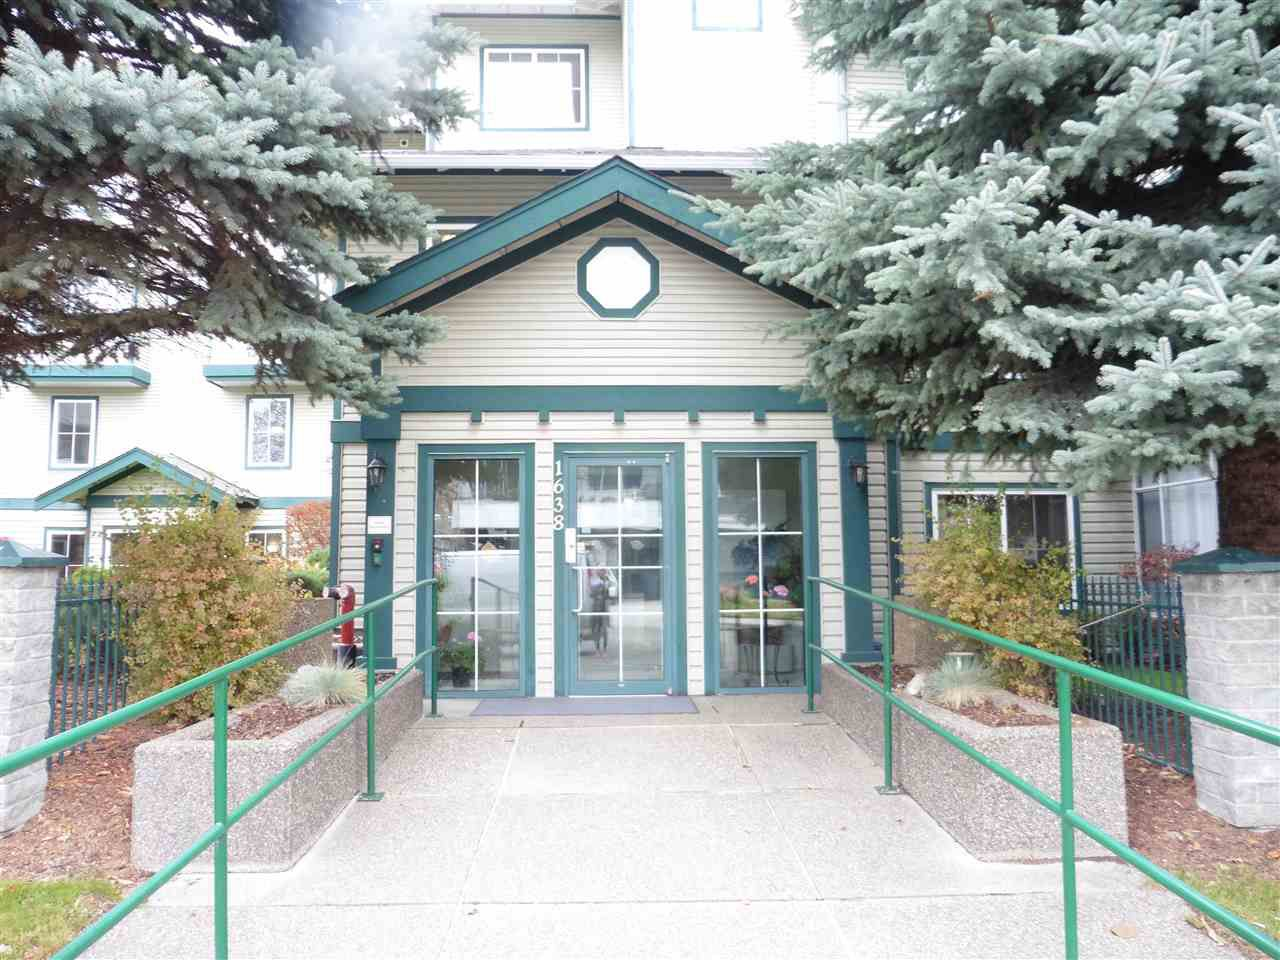 """Main Photo: 100 1638 6TH Avenue in Prince George: Crescents House 1/2 Duplex for sale in """"COURTYARD/CRESCENTS"""" (PG City Central (Zone 72))  : MLS®# R2118443"""